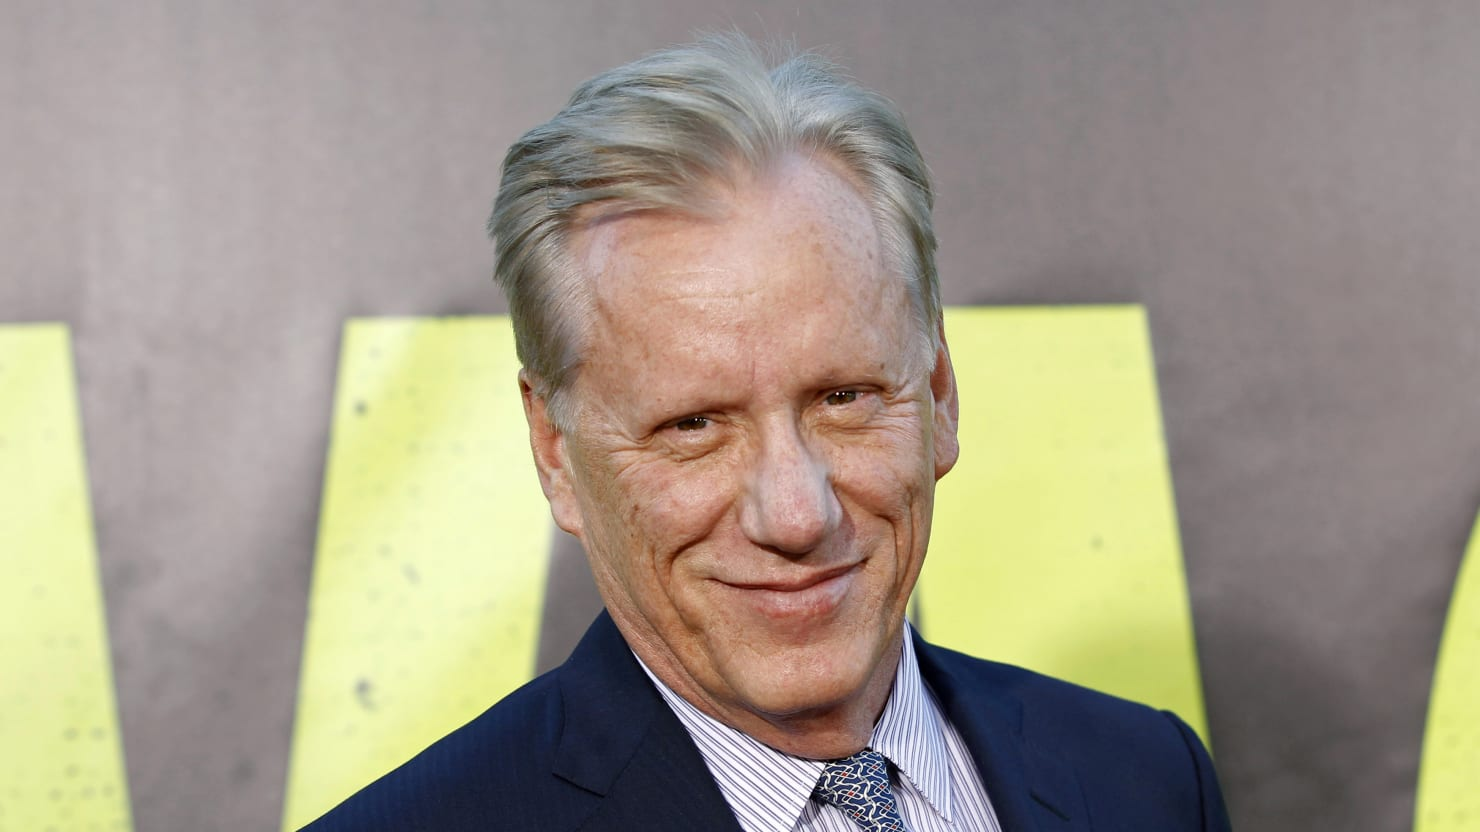 Amber Tamblyn Accuses James Woods Of Being A Sexual